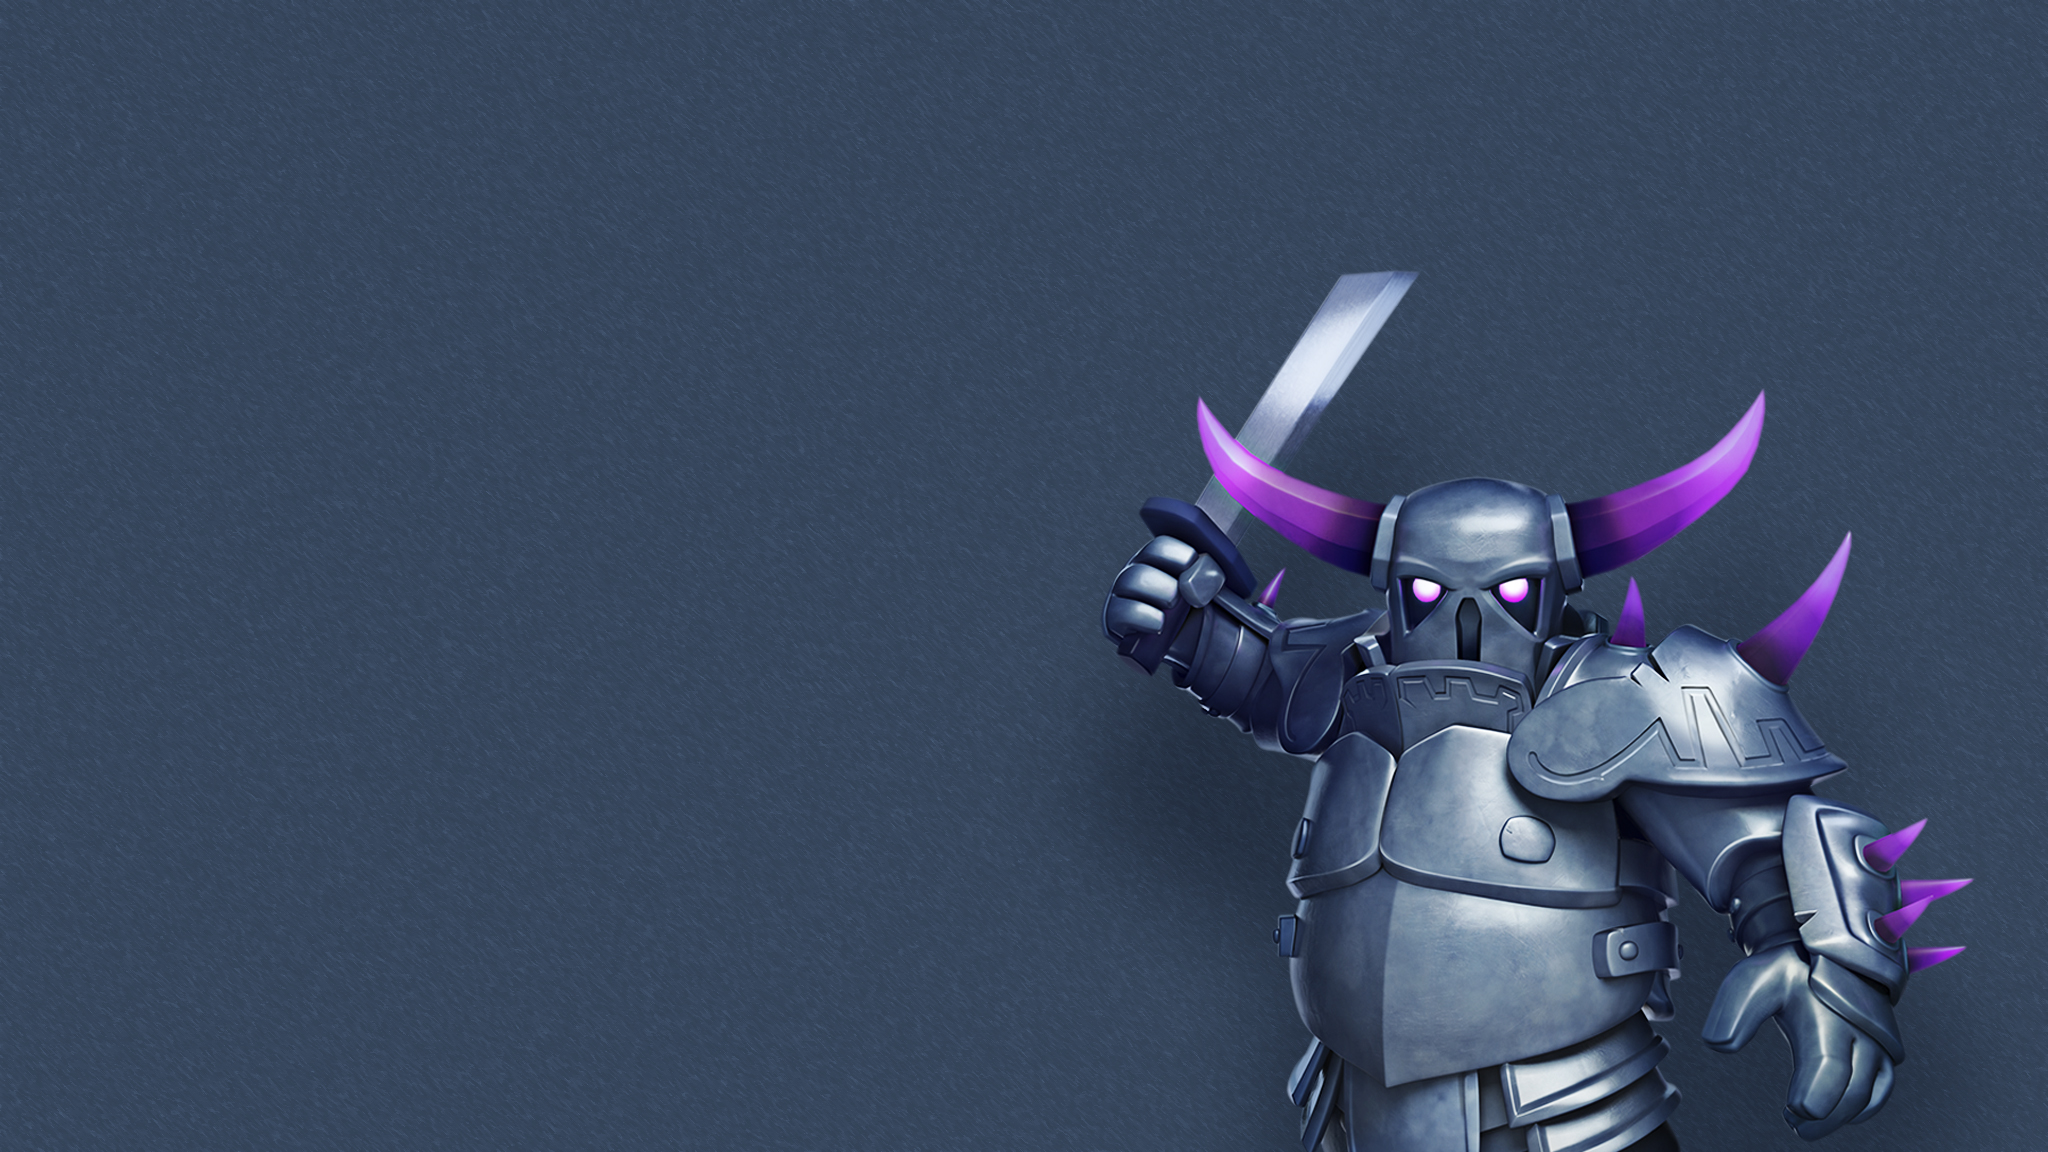 Pekka Clash Of Clans Hd Games 4k Wallpapers Images Backgrounds